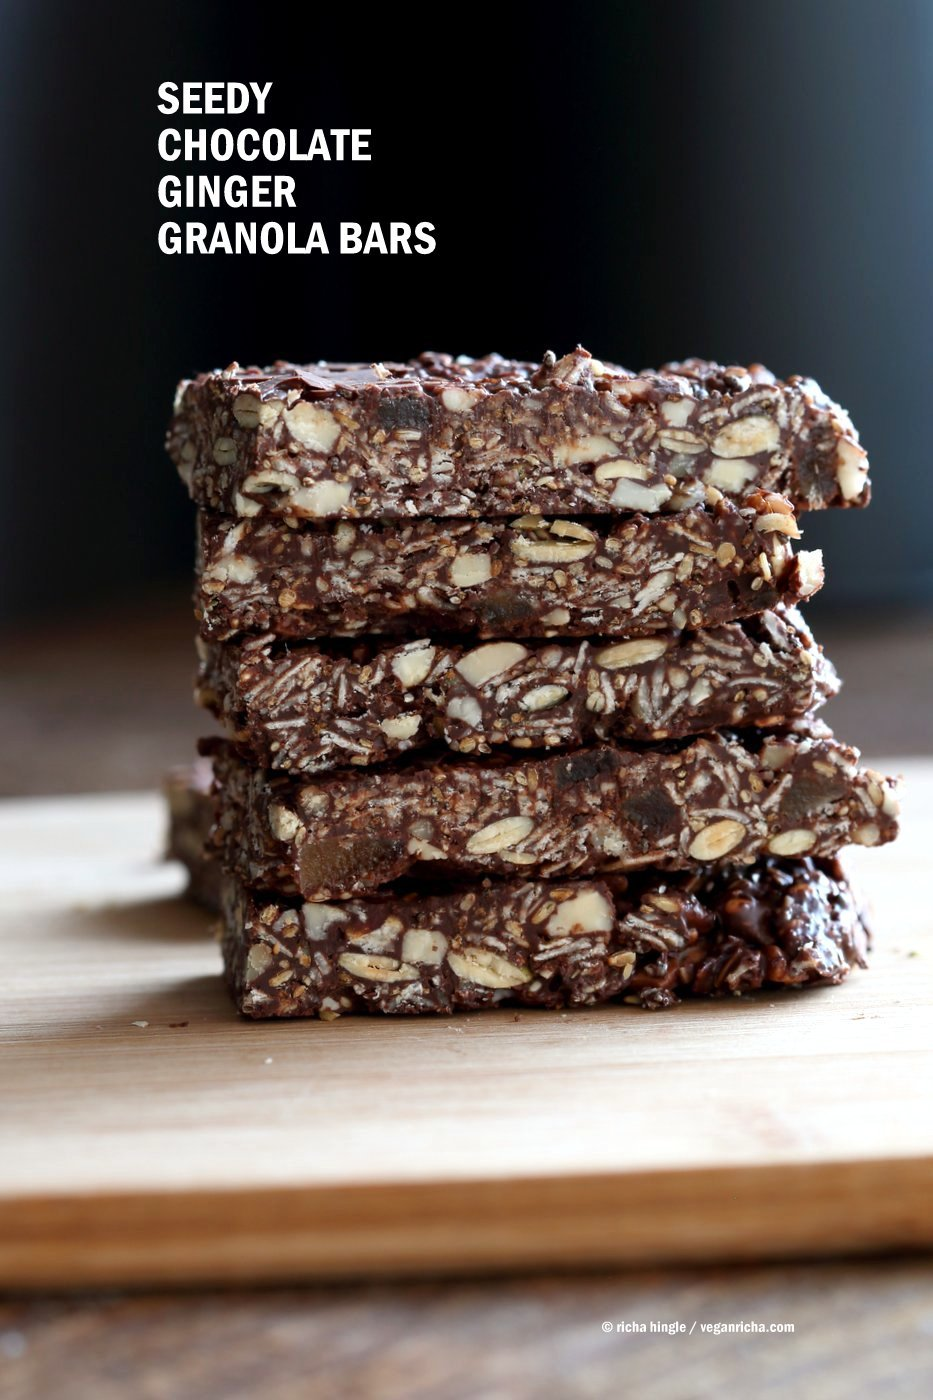 Seedy Chocolate No Bake Granola Bars with candied ginger and gingerbread spices. These bars filled will nuts and seeds make a tasty snack. substitute nuts with more seeds to make them nut-free. Vegan Gluten-free Recipe | VeganRicha.com